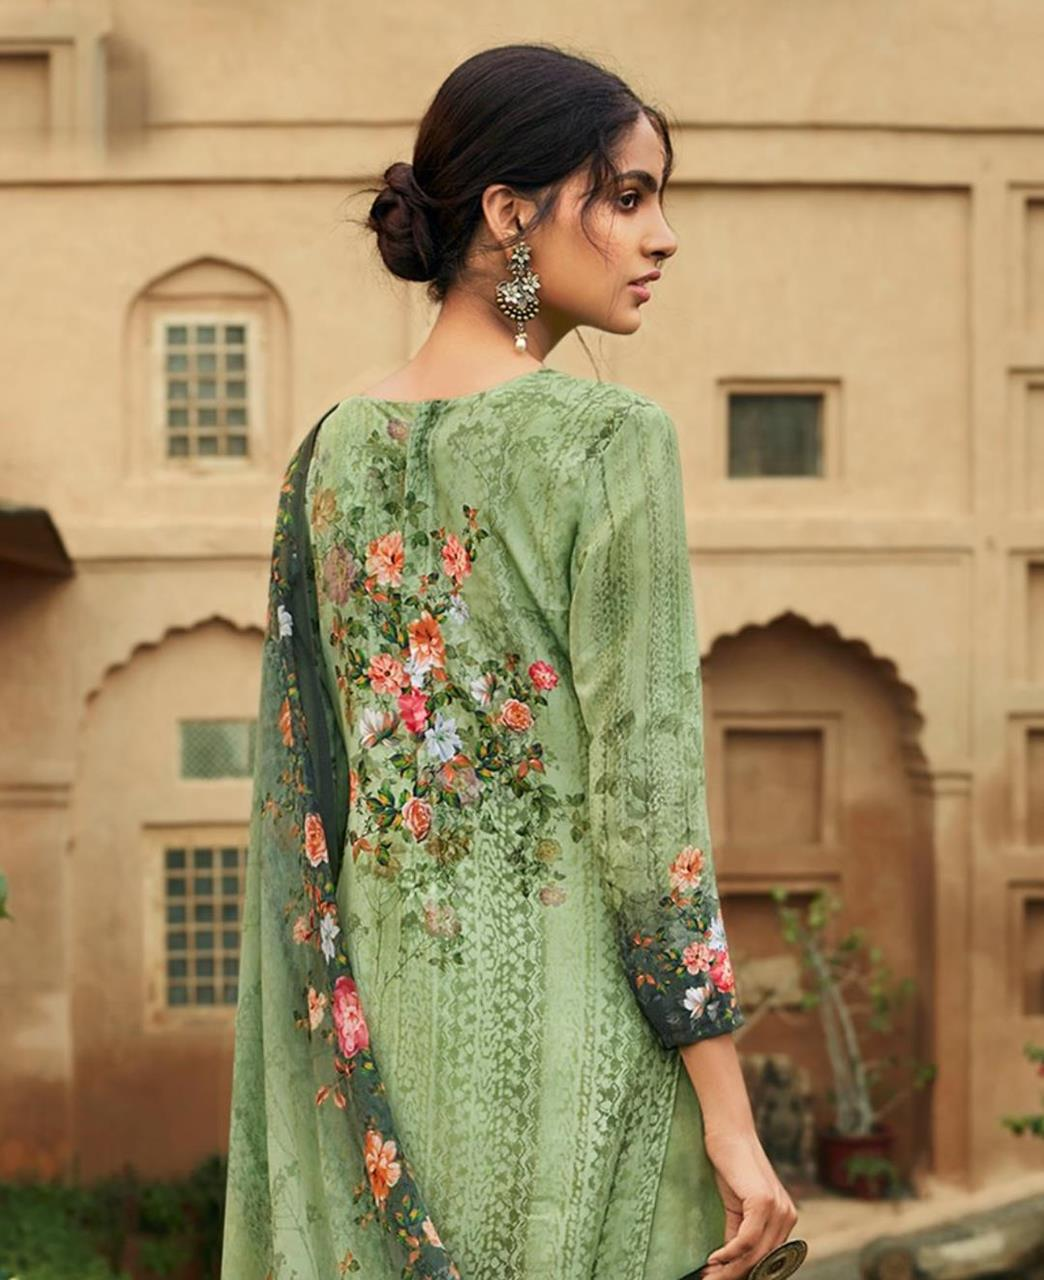 Printed Georgette Straight cut Salwar Kameez in Sea Green